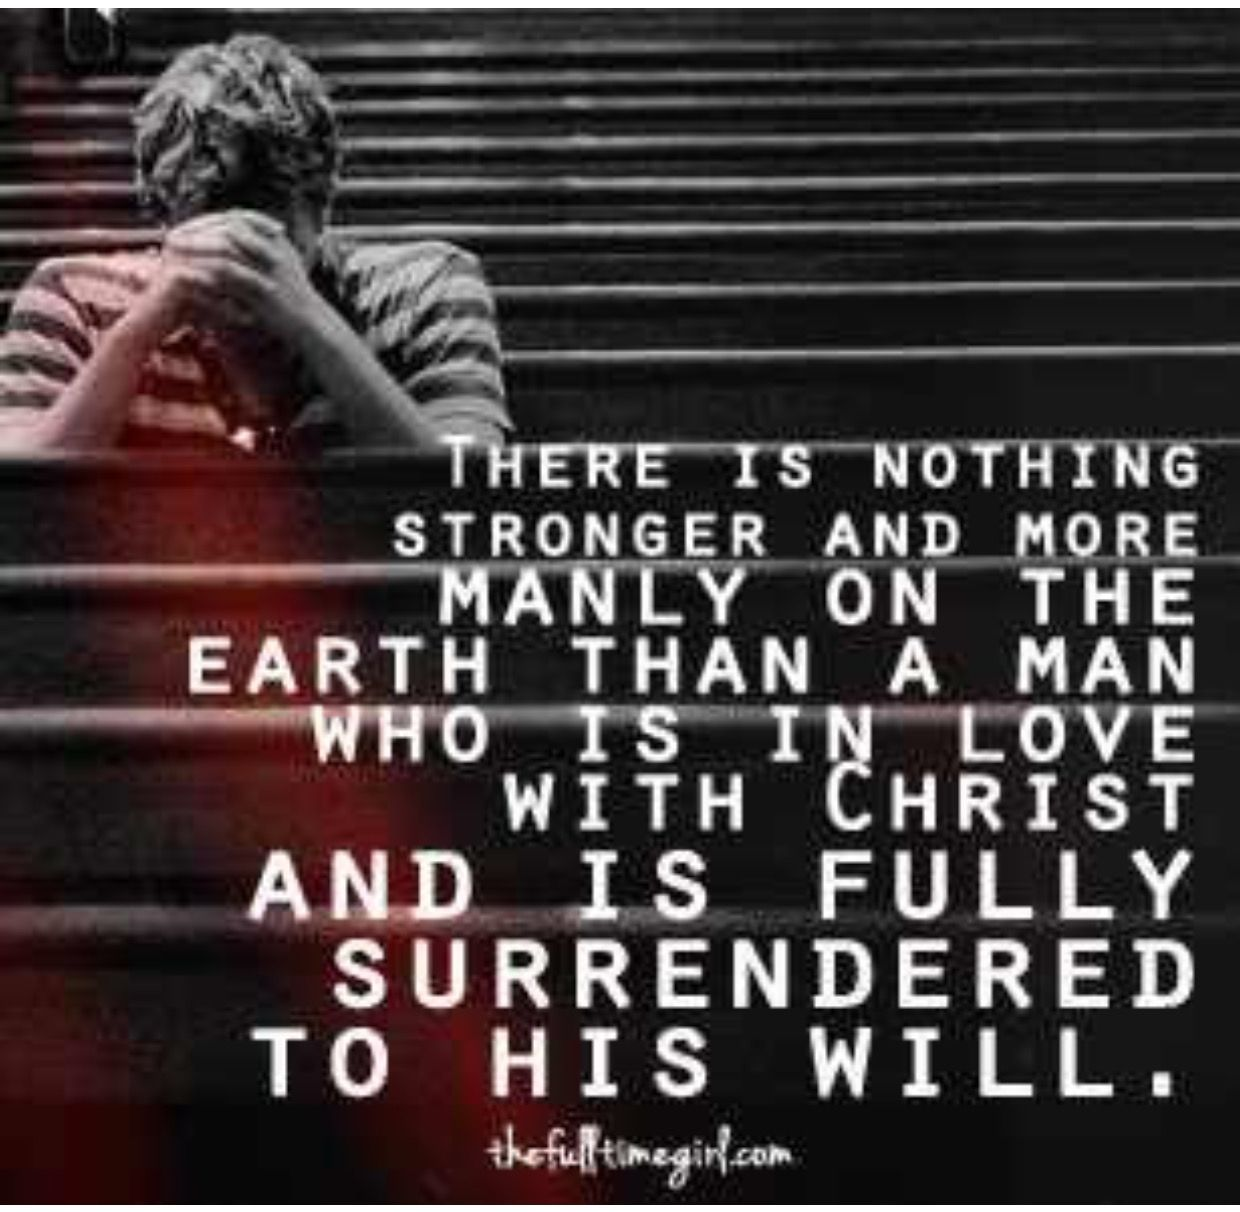 Quotes For Christian Men: There Is Nothing Stronger And More Manly On The Earth Than